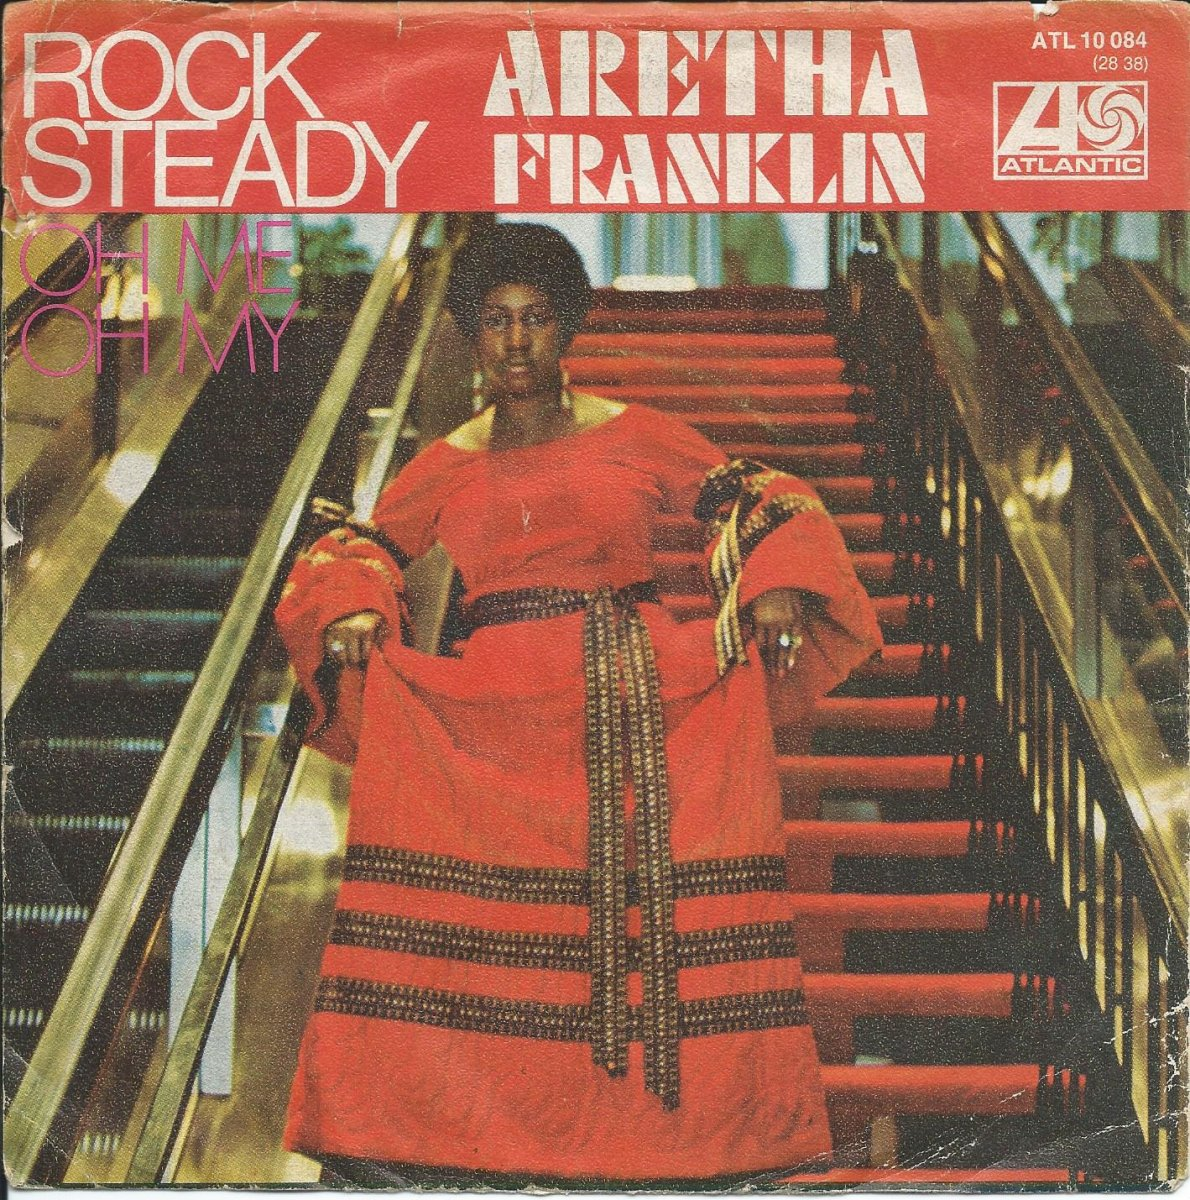 ARETHA FRANKLIN ‎/ ROCK STEADY / OH ME OH MY (I'M A FOOL FOR YOU BABY) (7